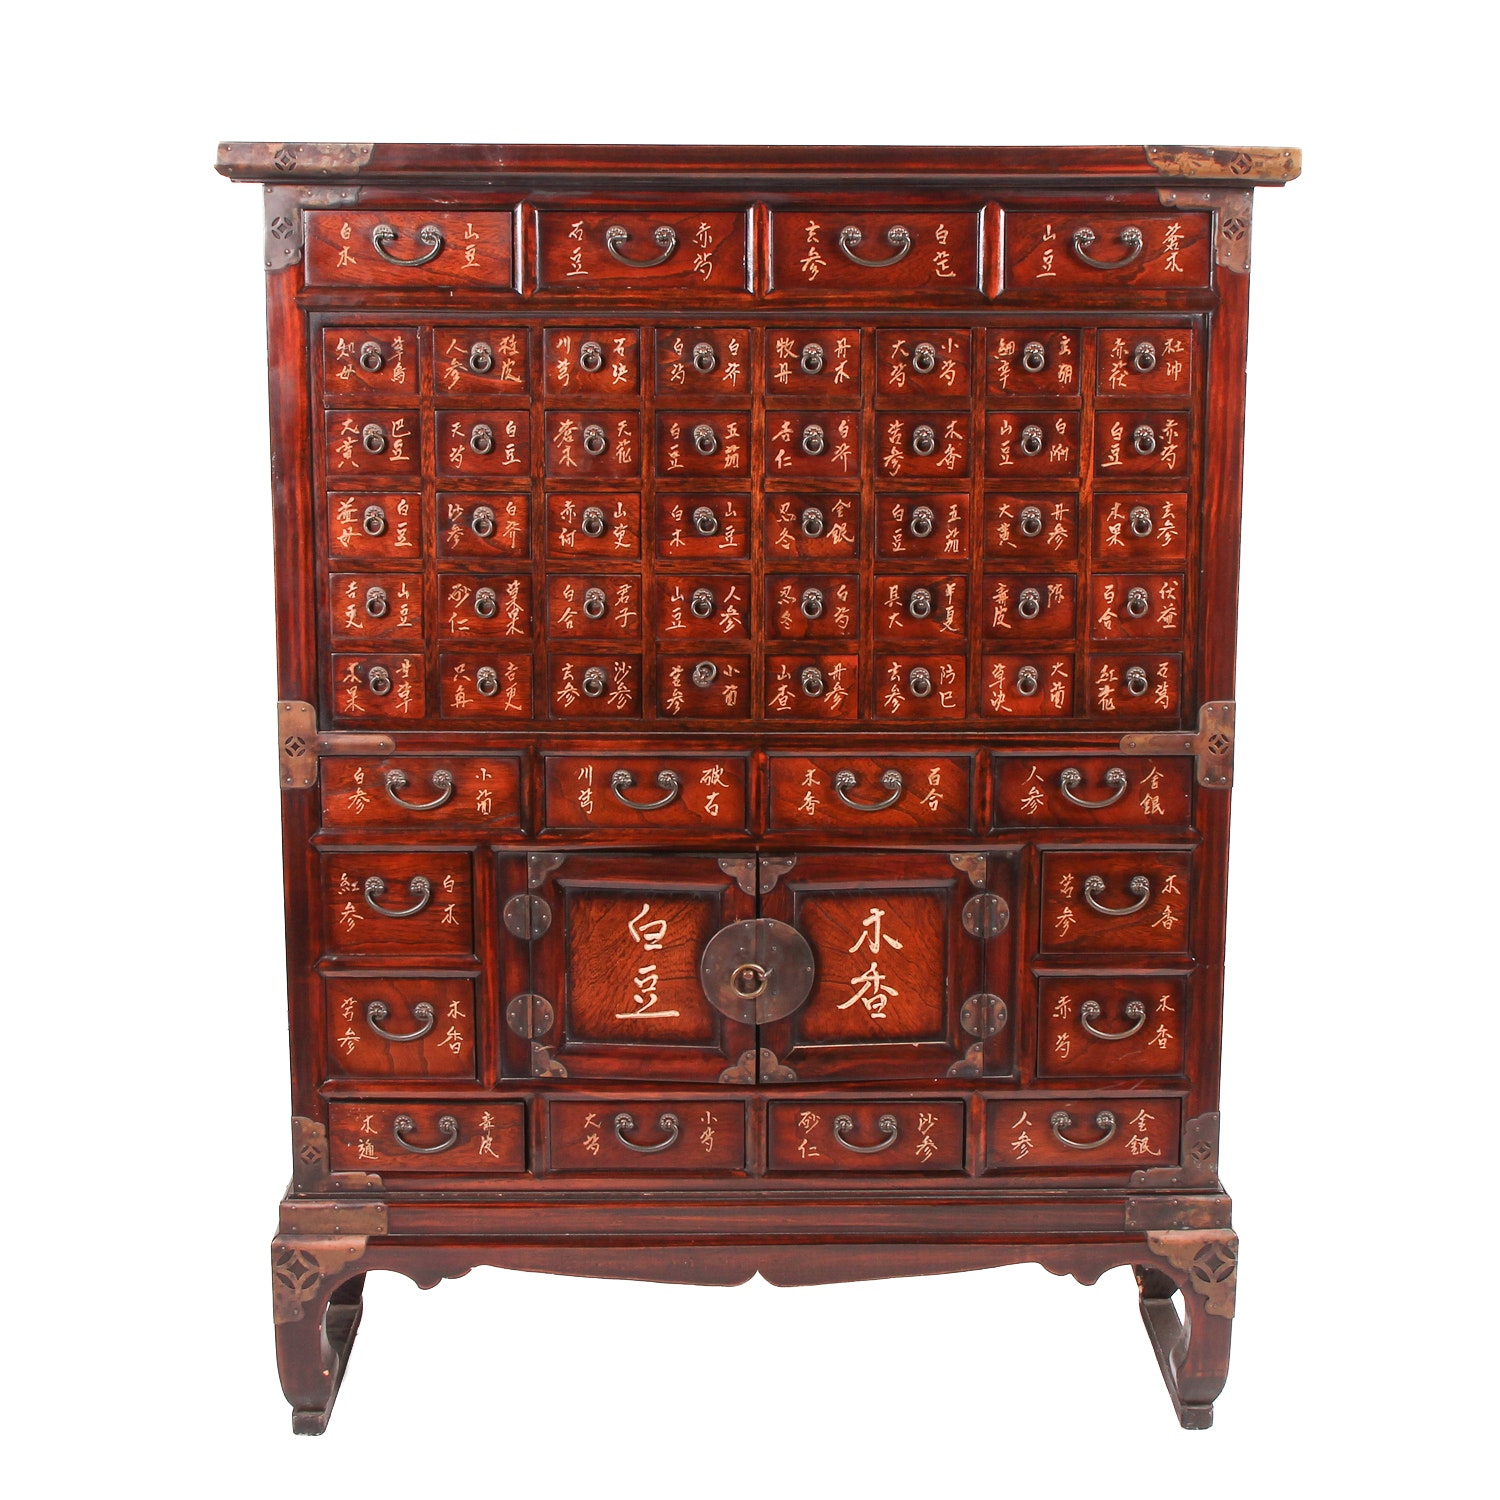 East Asian Apothecary Chest